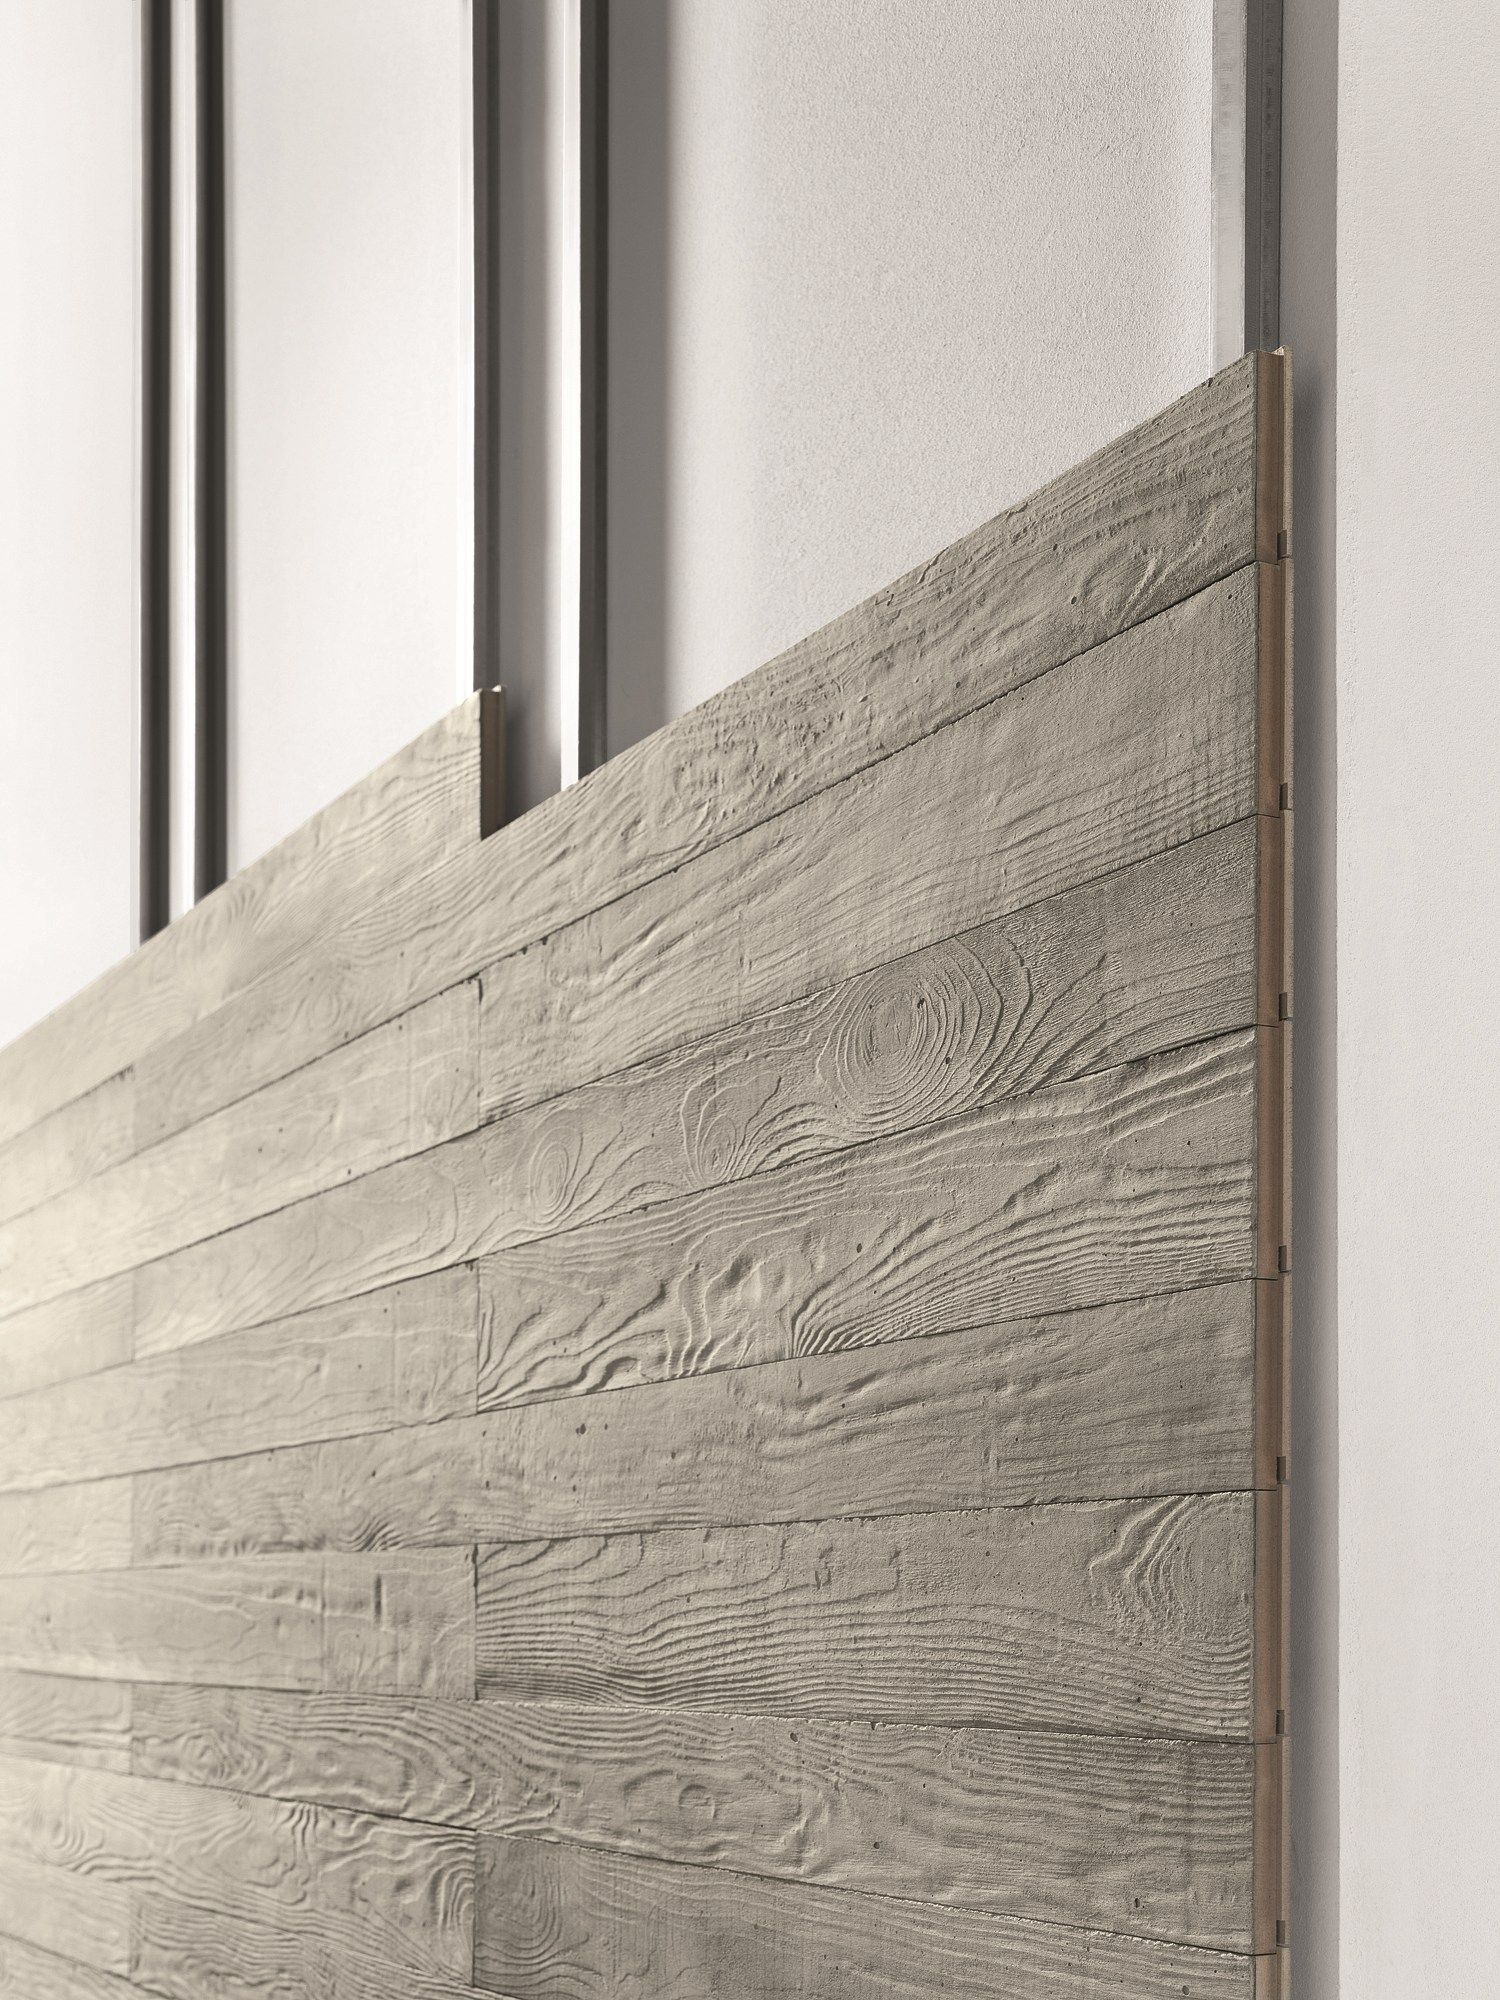 Planking Concrete Wall Tiles With Wood Effect Cimento Tavolato -